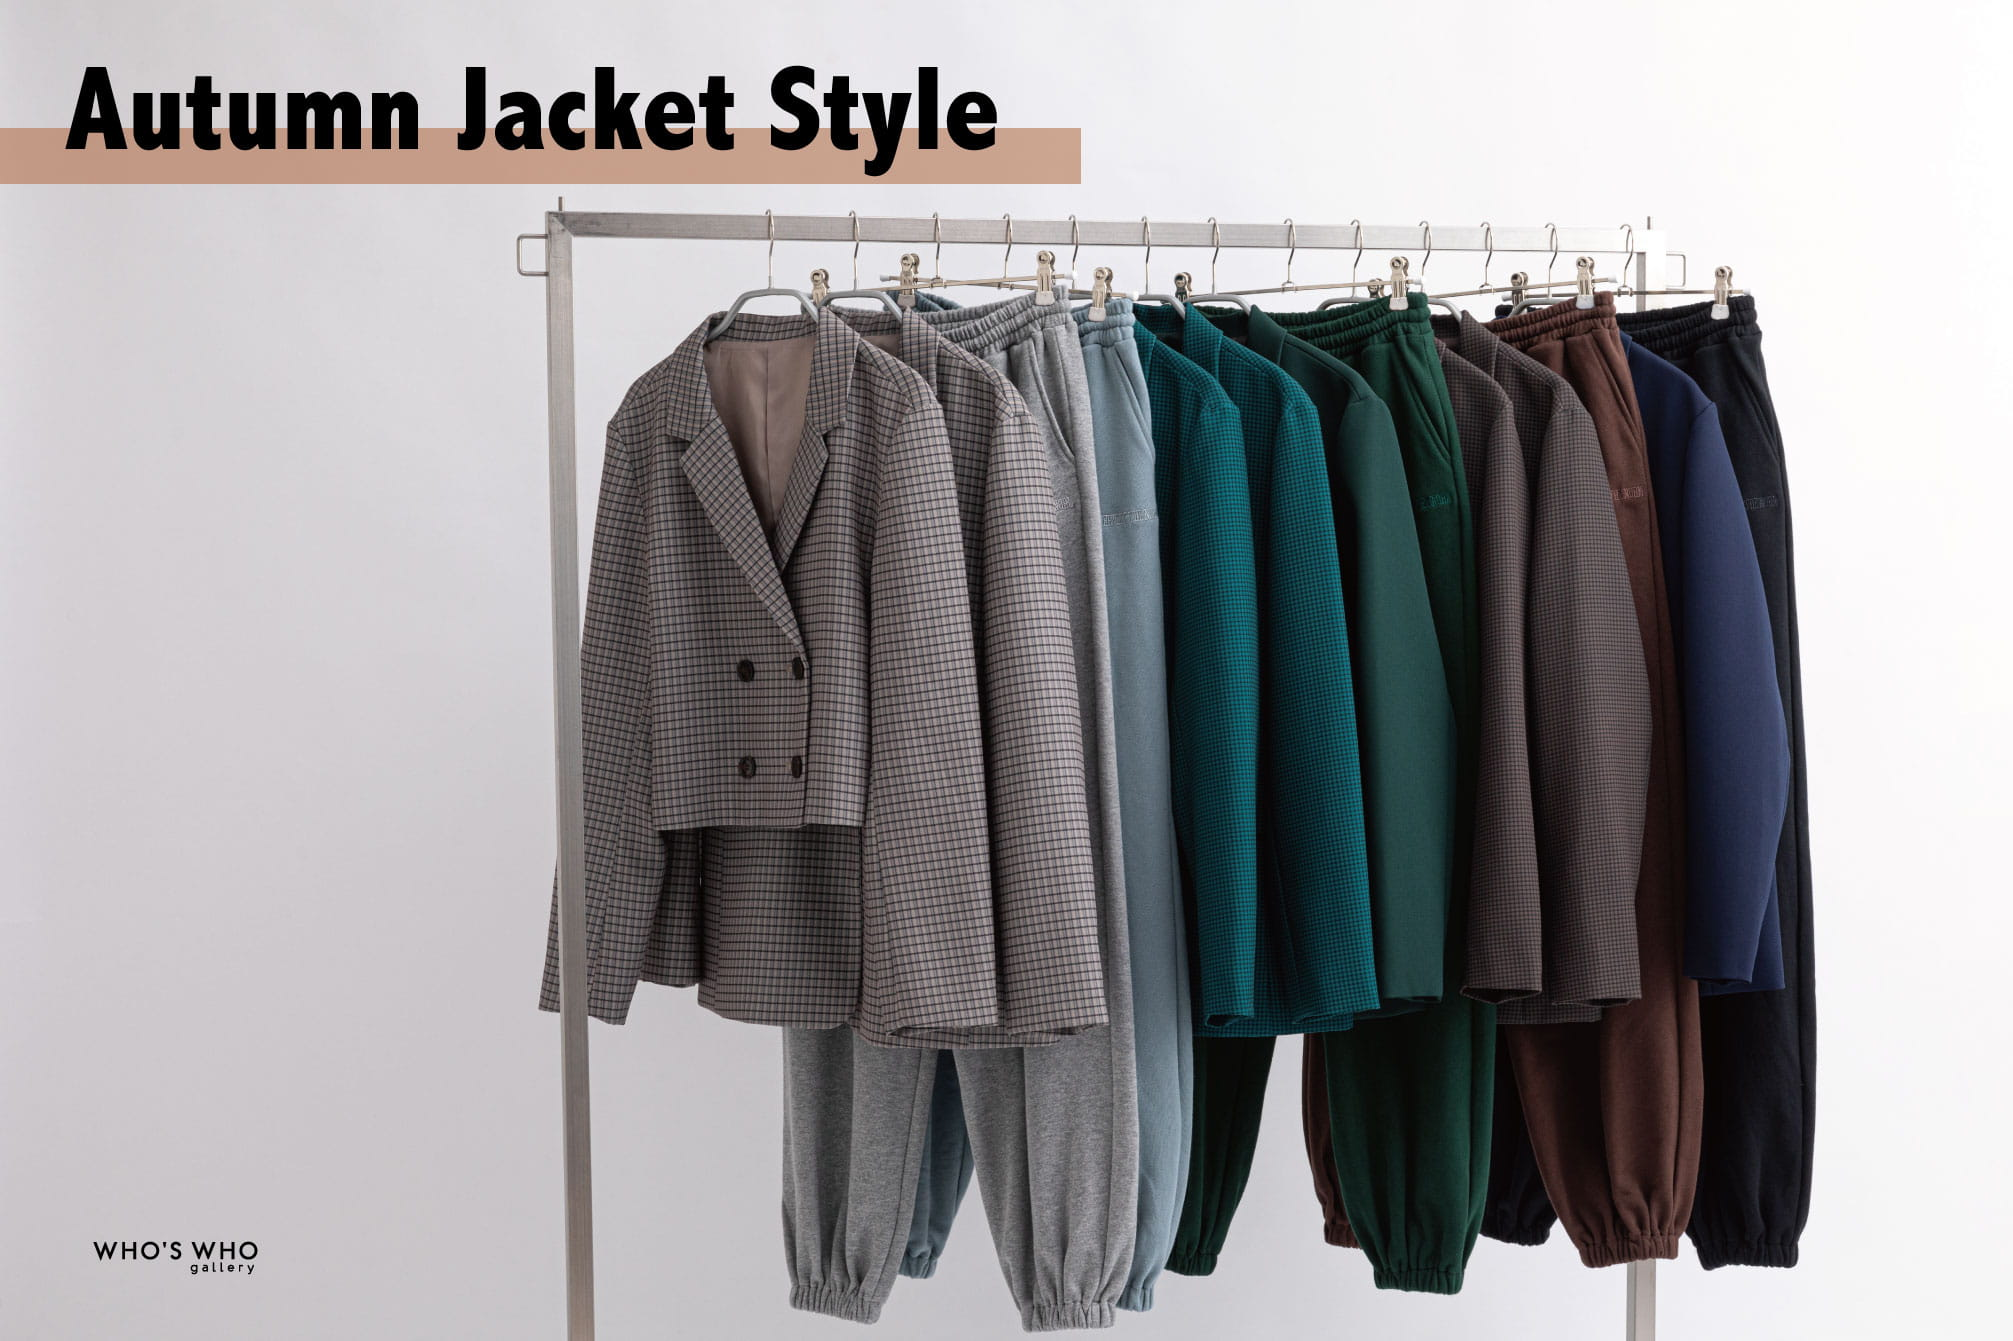 WHO'S WHO gallery 【Autumn Jacket Style】